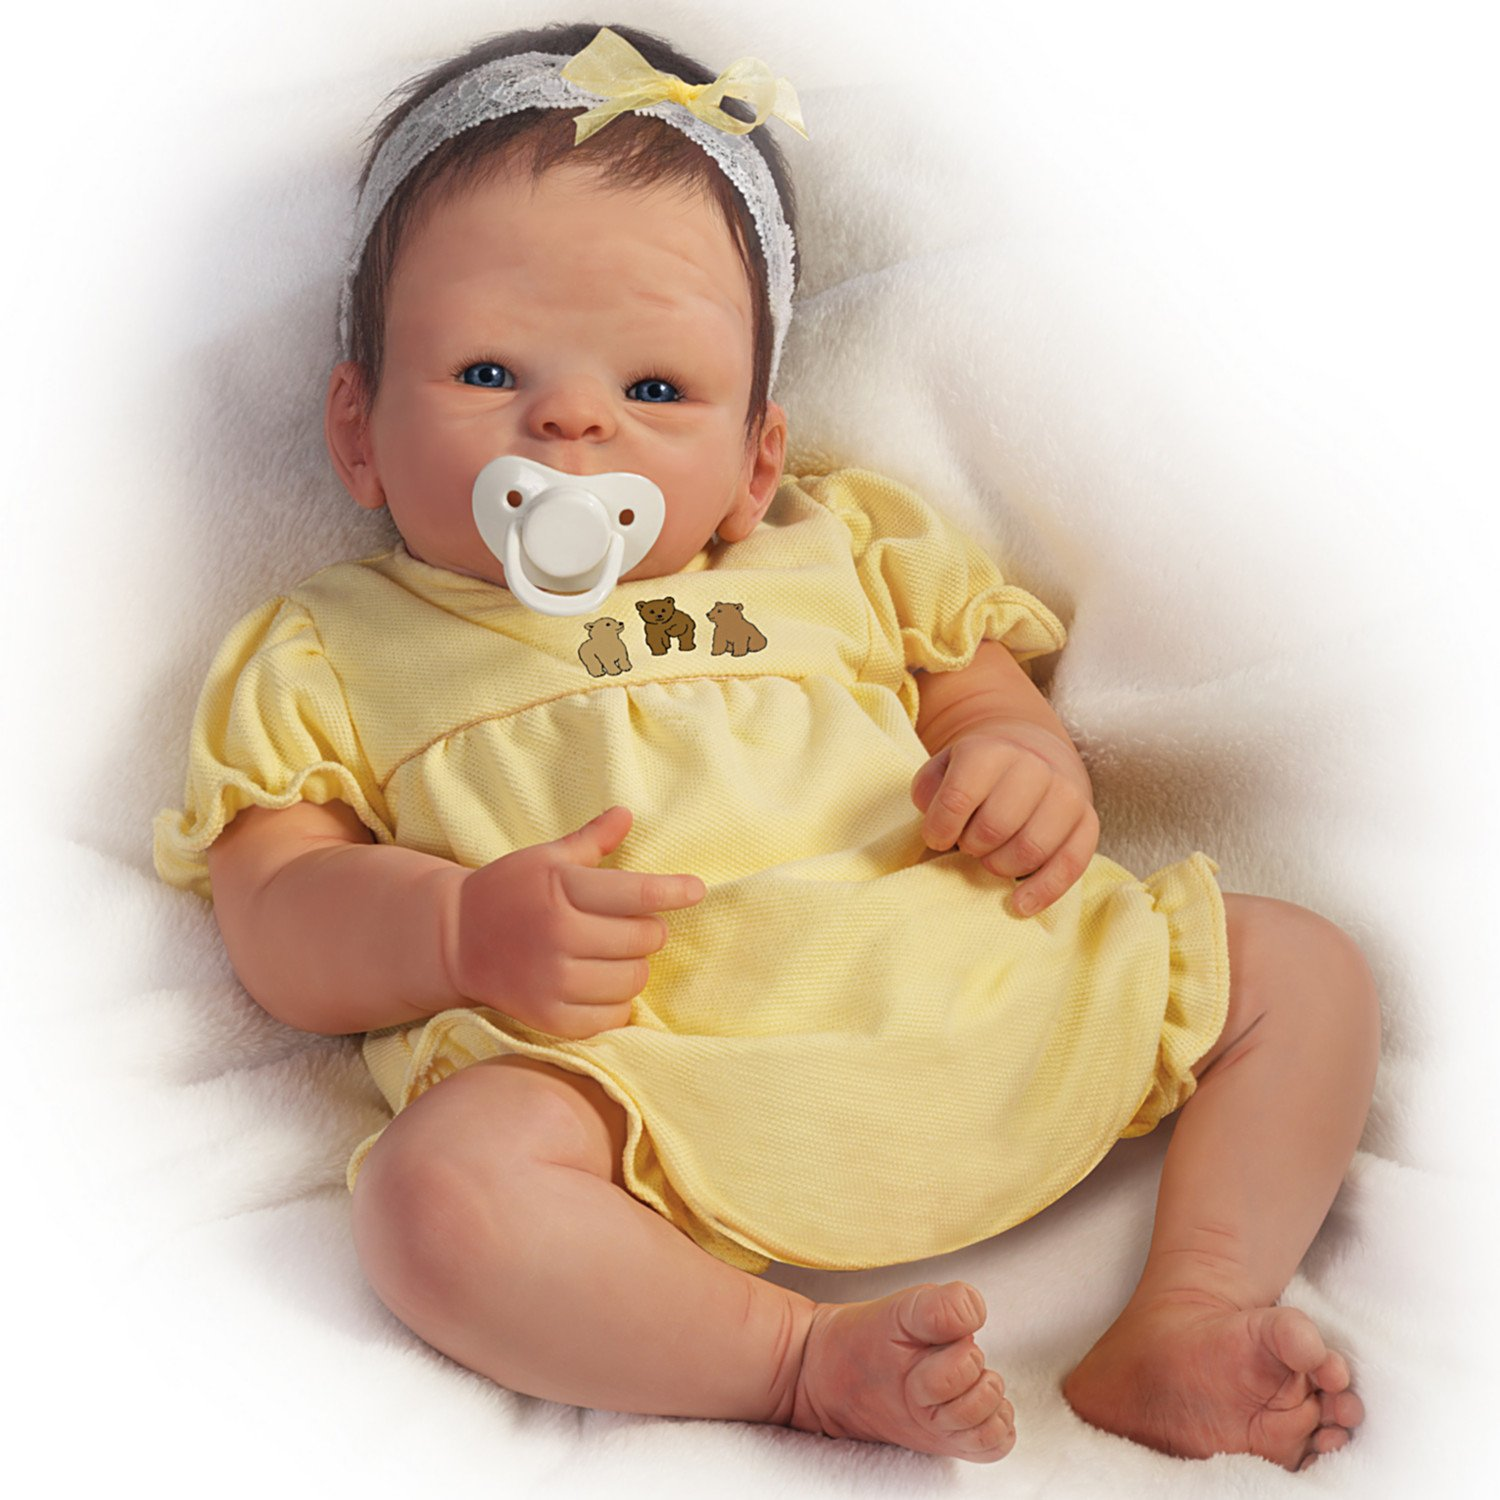 Tasha Edenholm So Truly Real Lifelike Poseable Baby Girl Doll by The Ashton-Drake Galleries realistic silicone vinyl reborn baby doll for kids gift toys lifelike sleeping babies 17inch